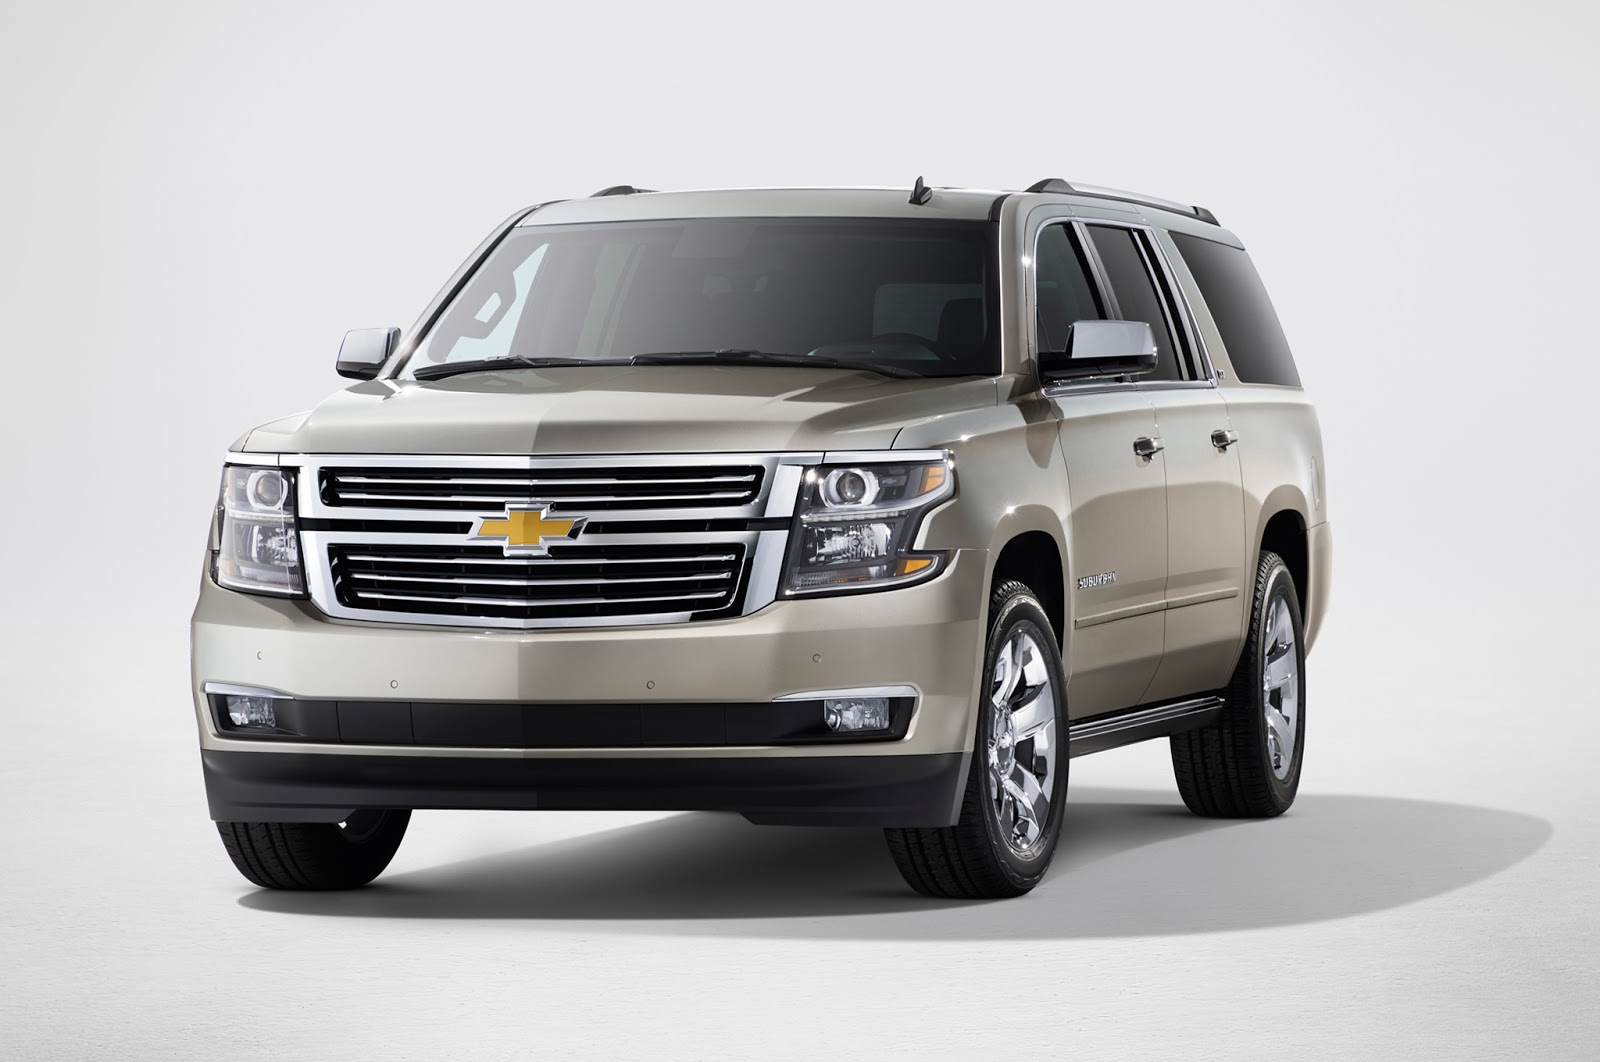 latest cars models 2015 chevrolet tahoe. Black Bedroom Furniture Sets. Home Design Ideas